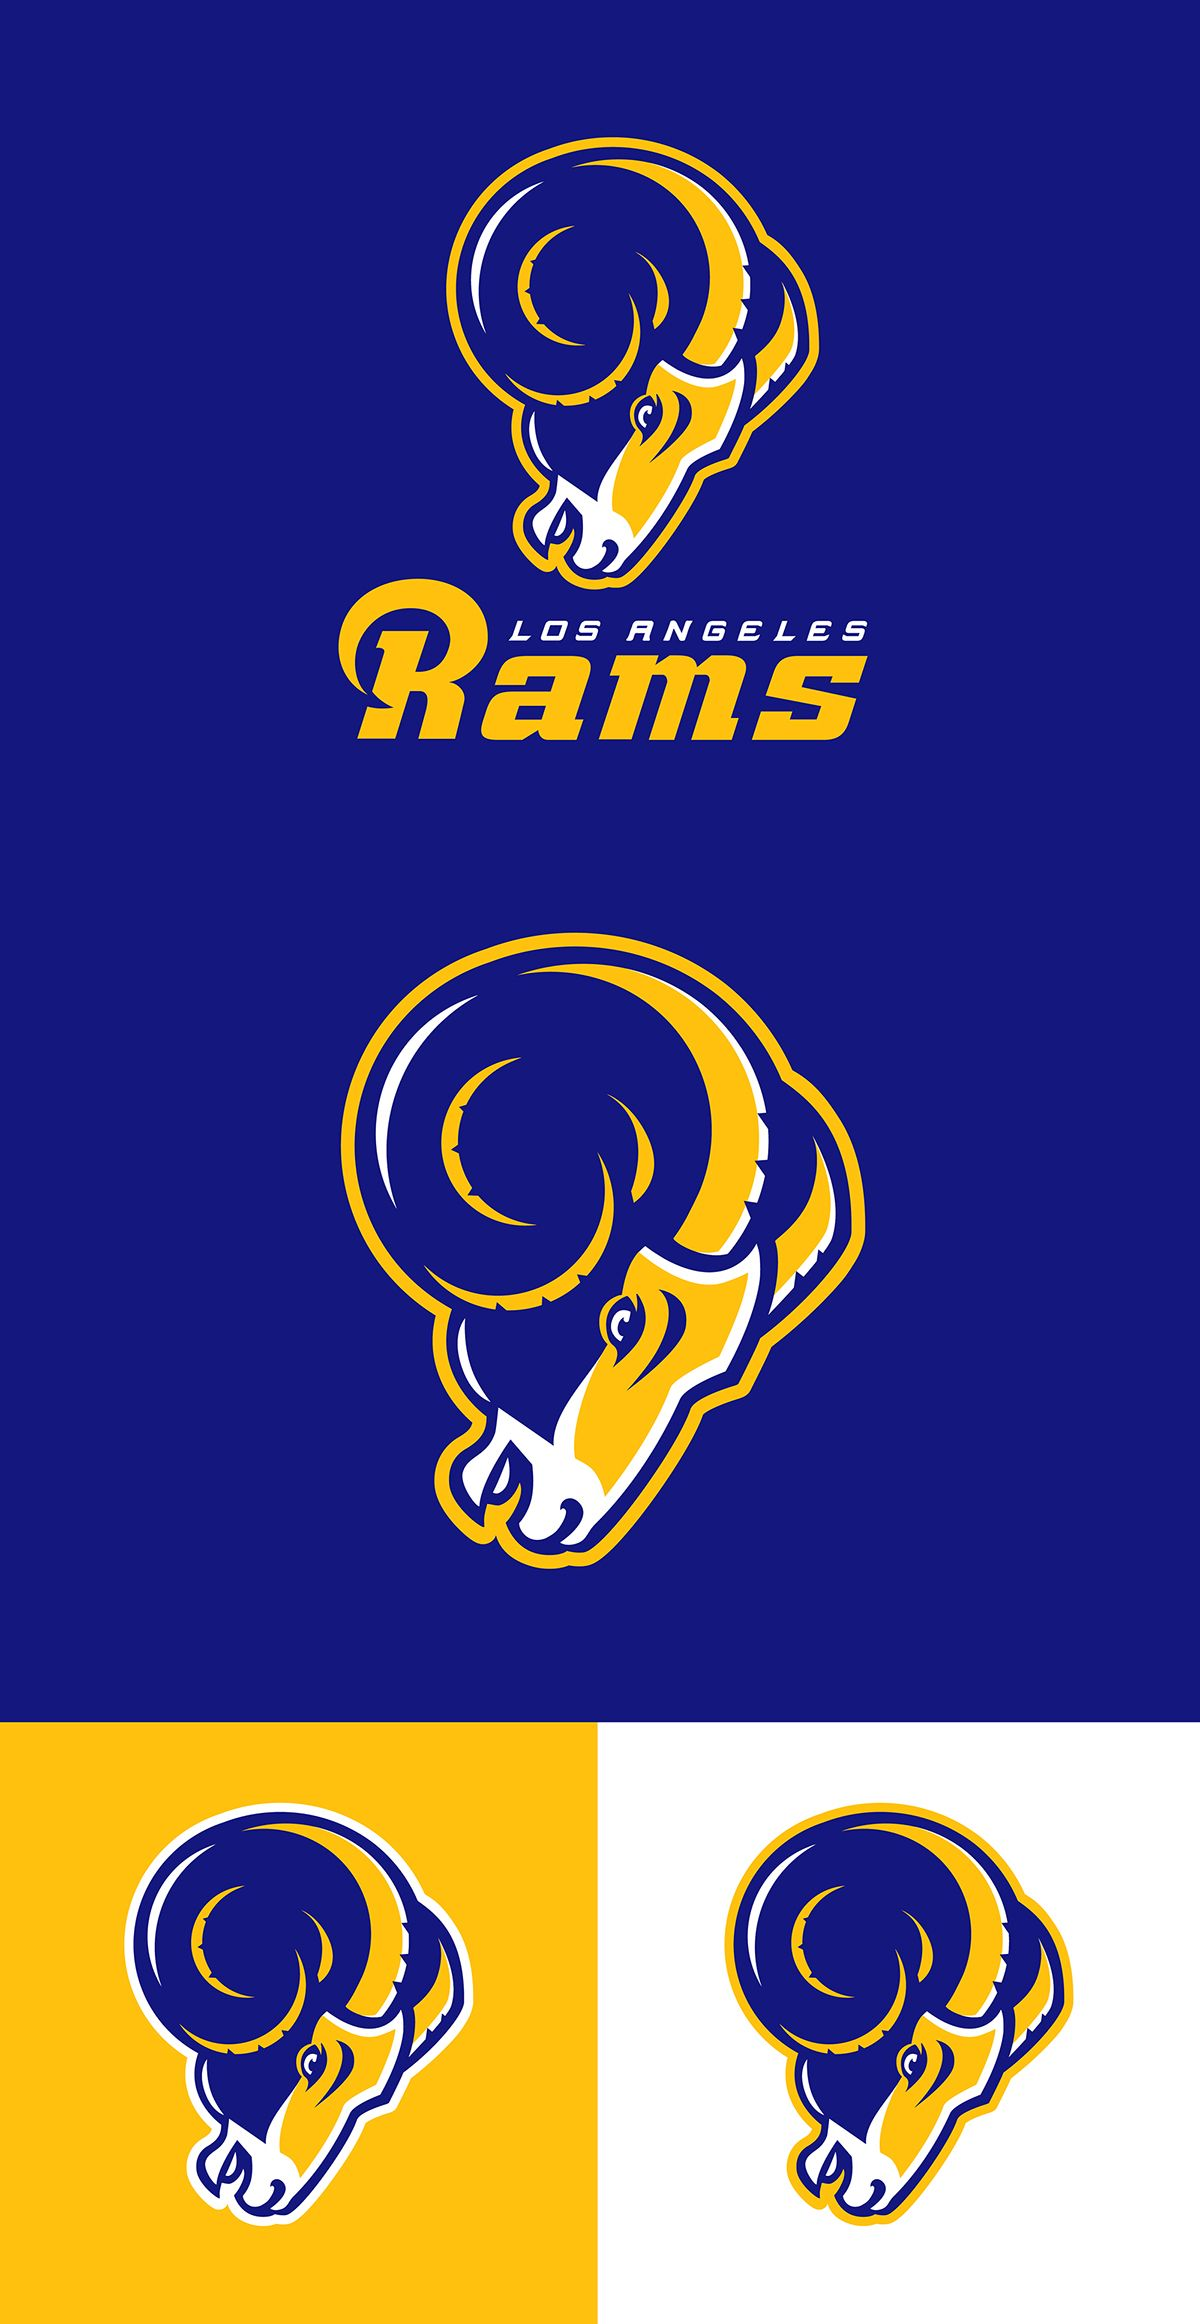 Los Angeles Rams concept on Behance Sports logo, Game